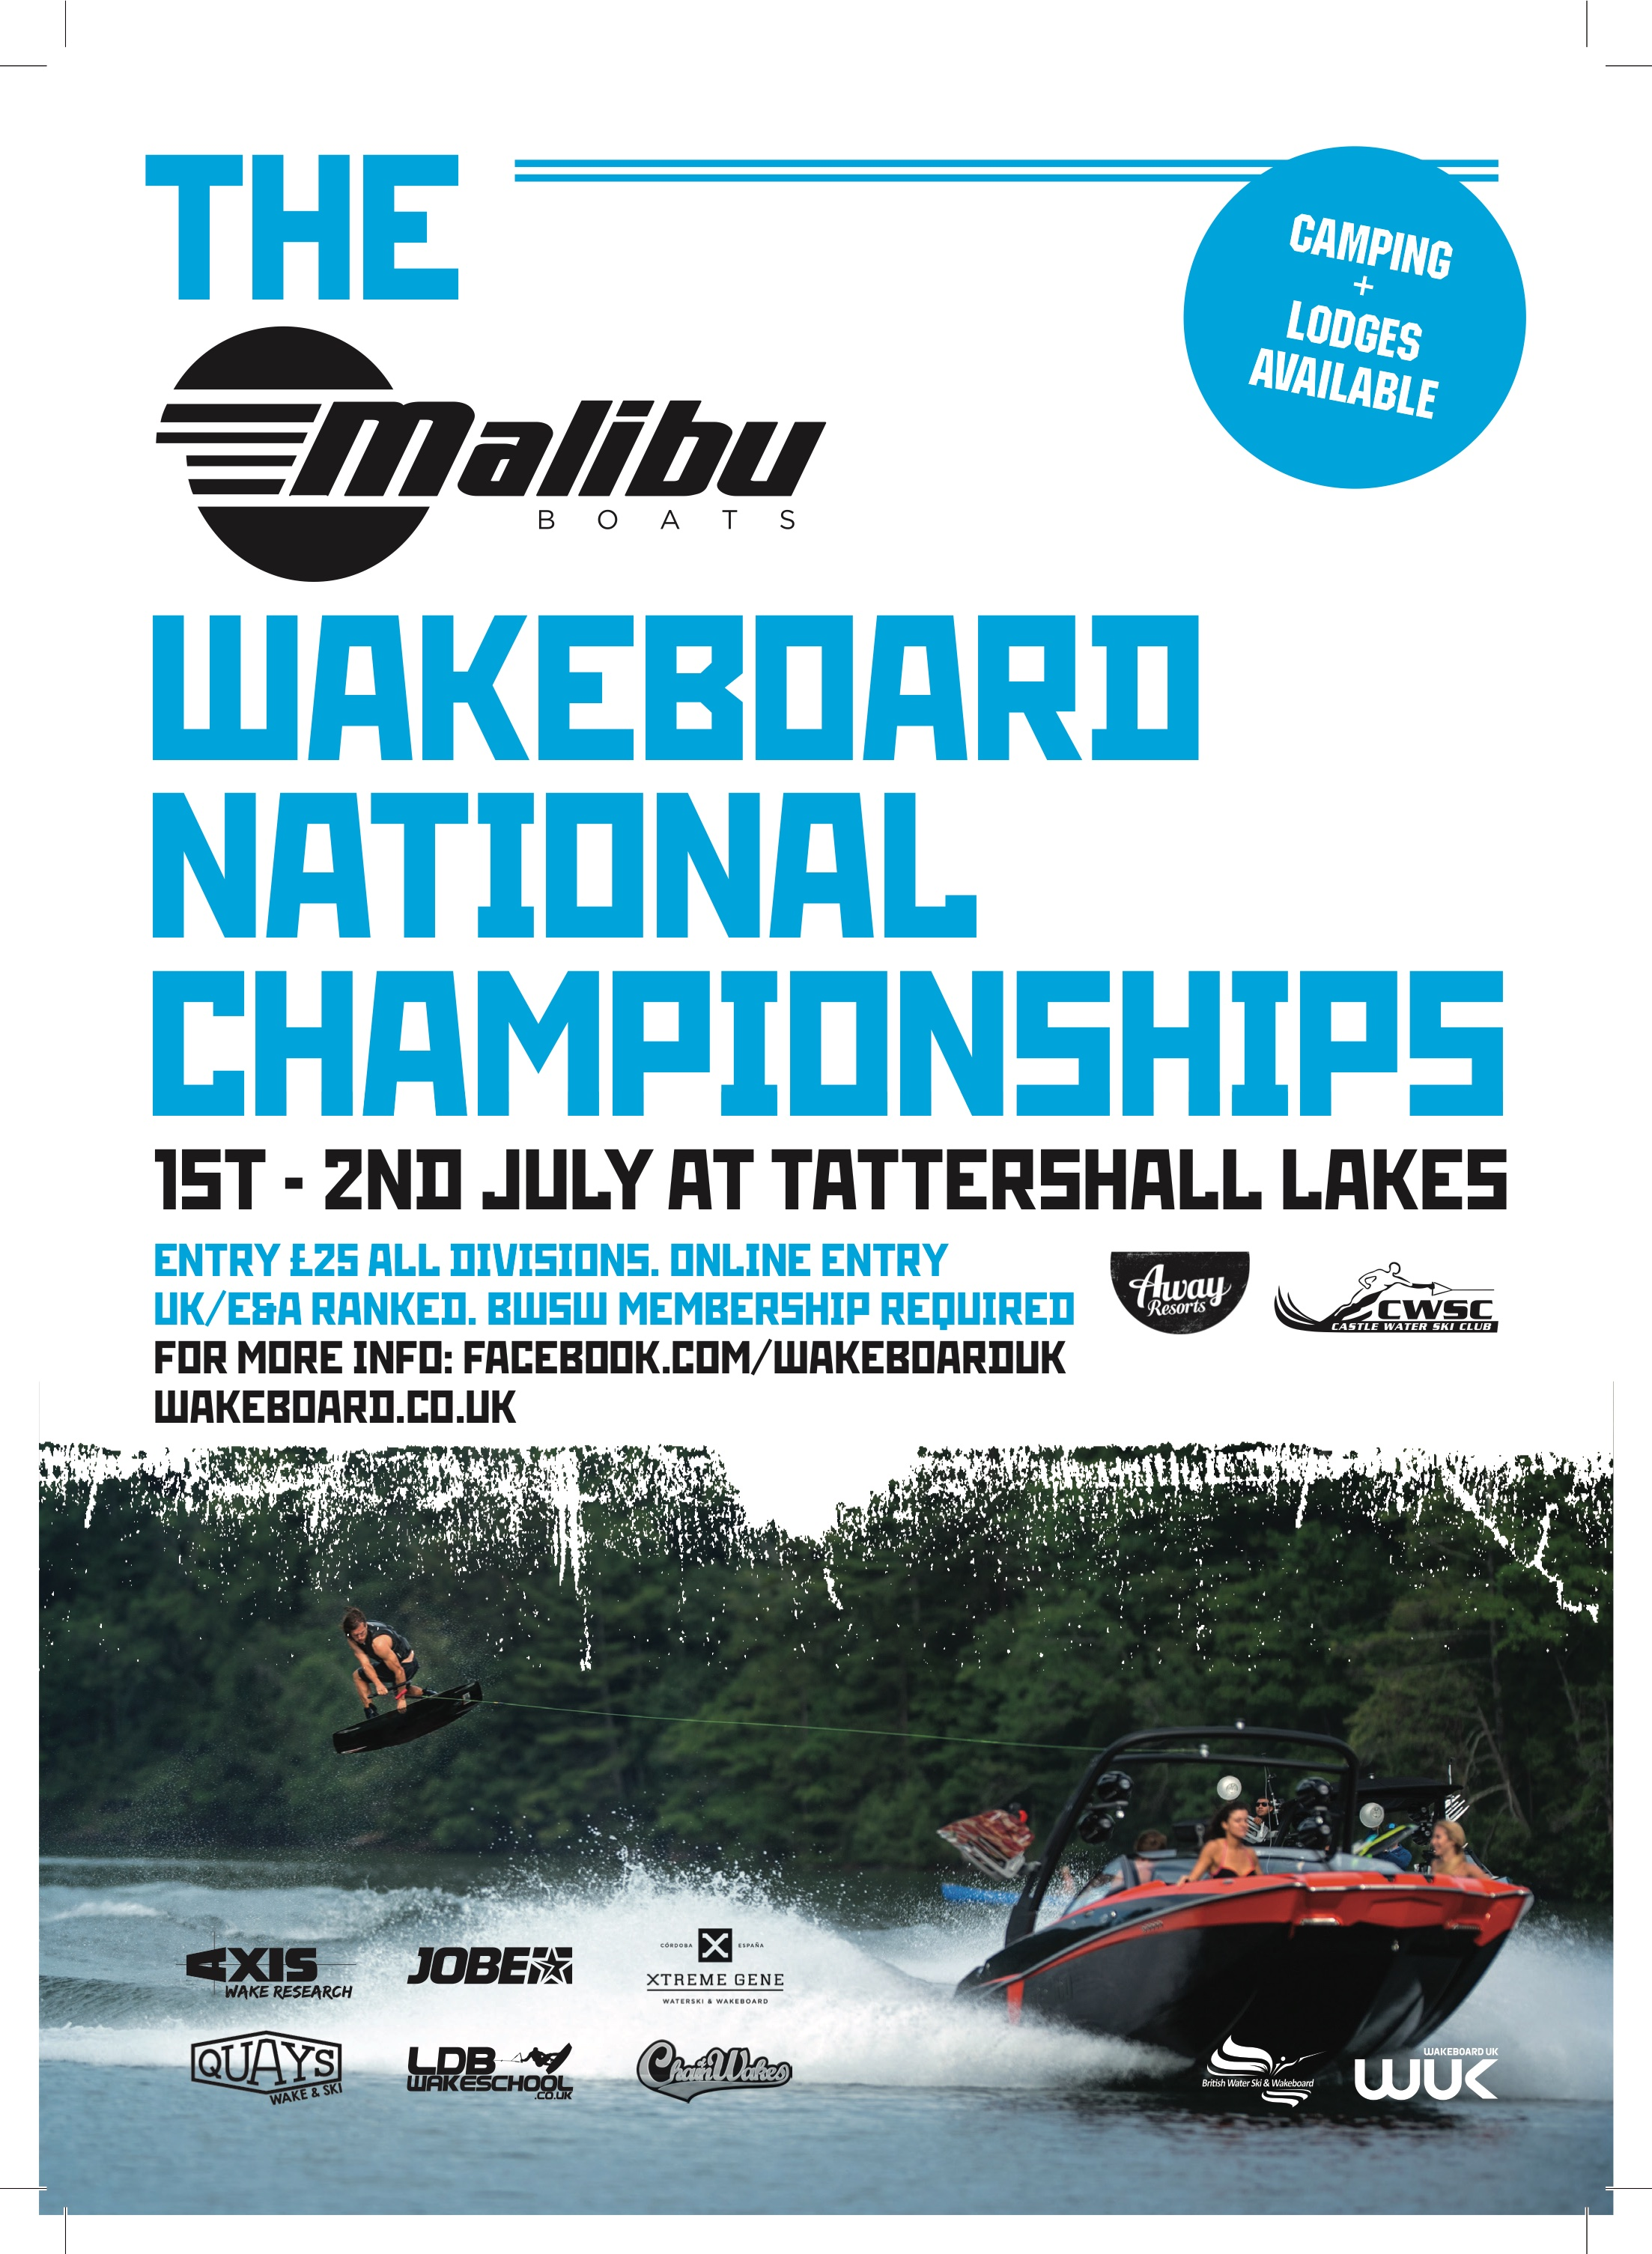 Malibu Boats Wakeboard National Championships 2017